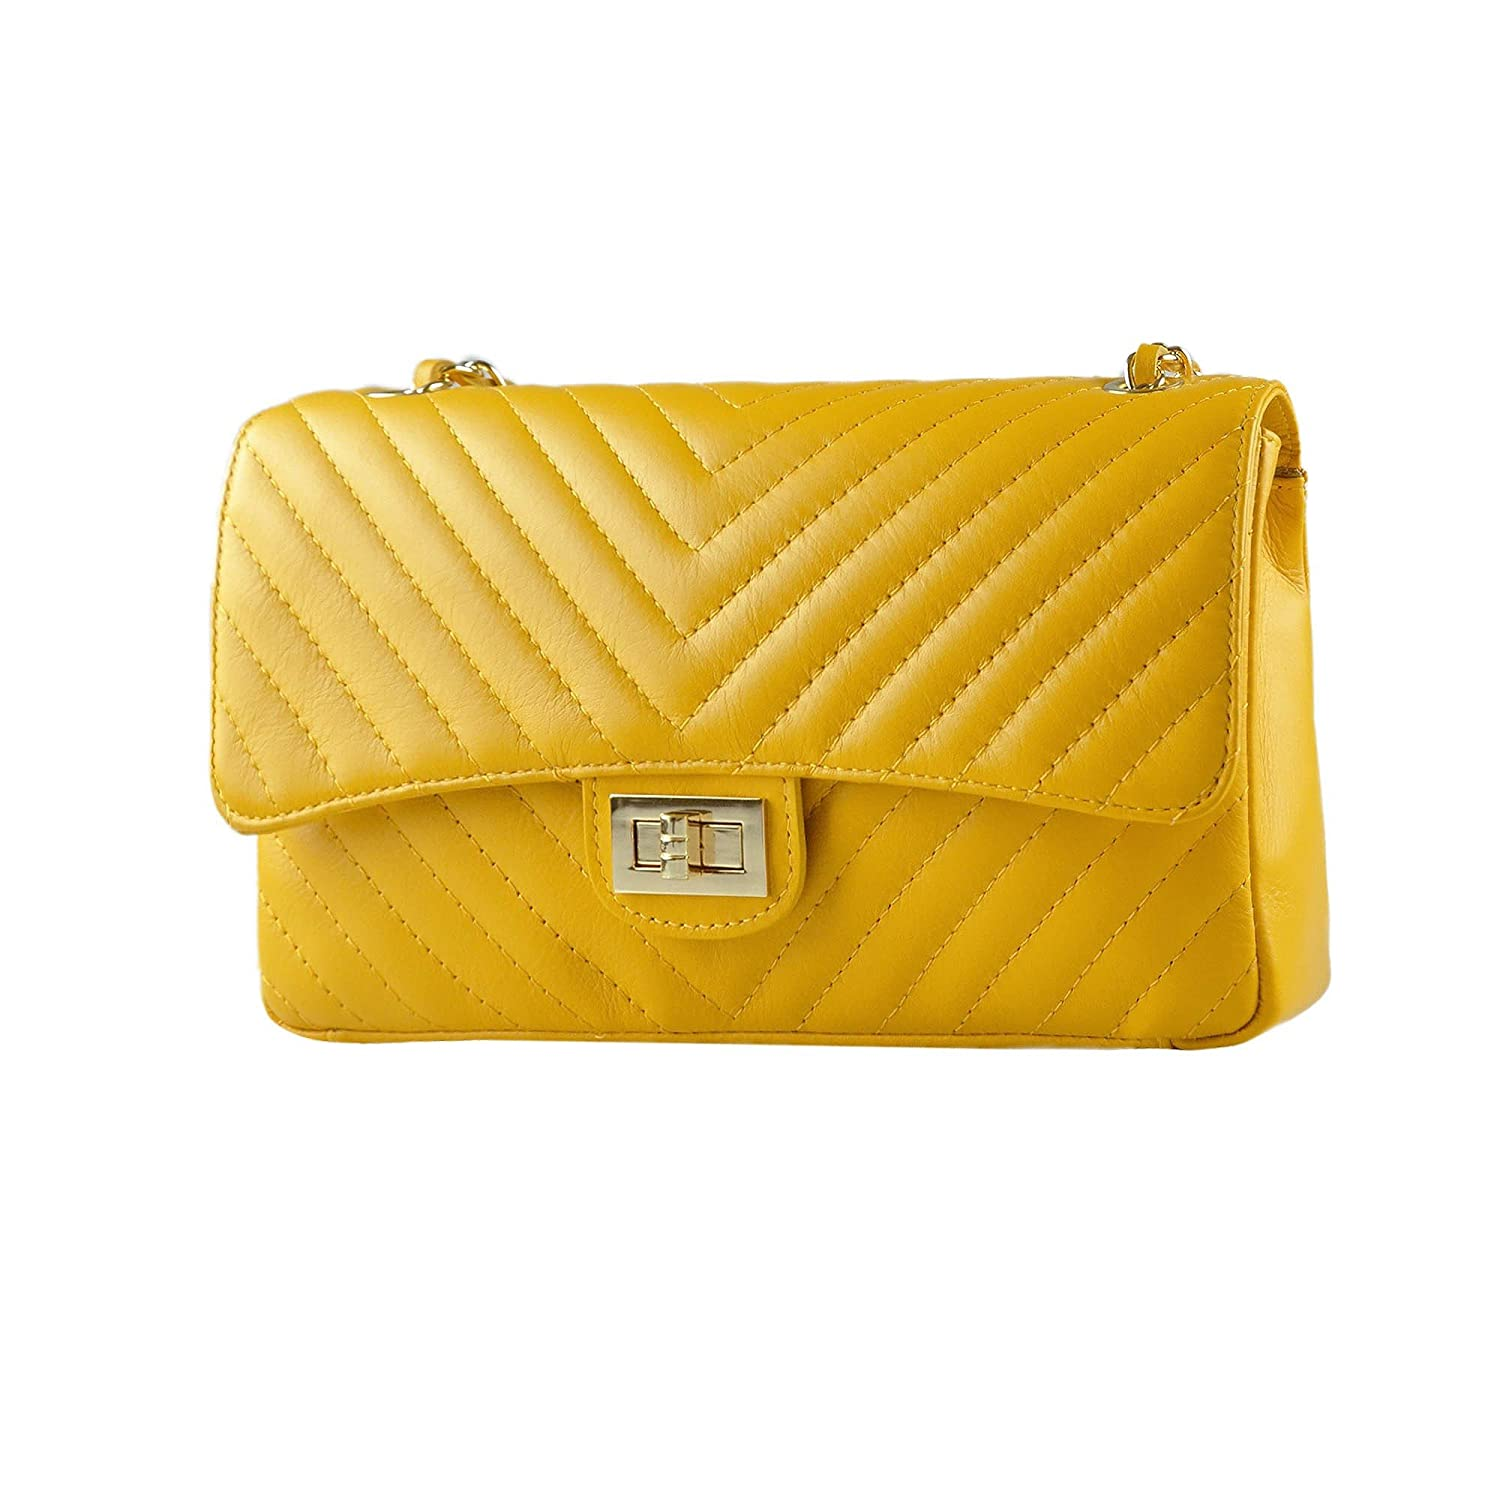 53aad40e78f SINDY Italian quilted cross body shoulder clutch purse metal and leather  chain soft smooth chevron quilted leather (medium GOLD yellow)   Amazon.co.uk  Shoes ...